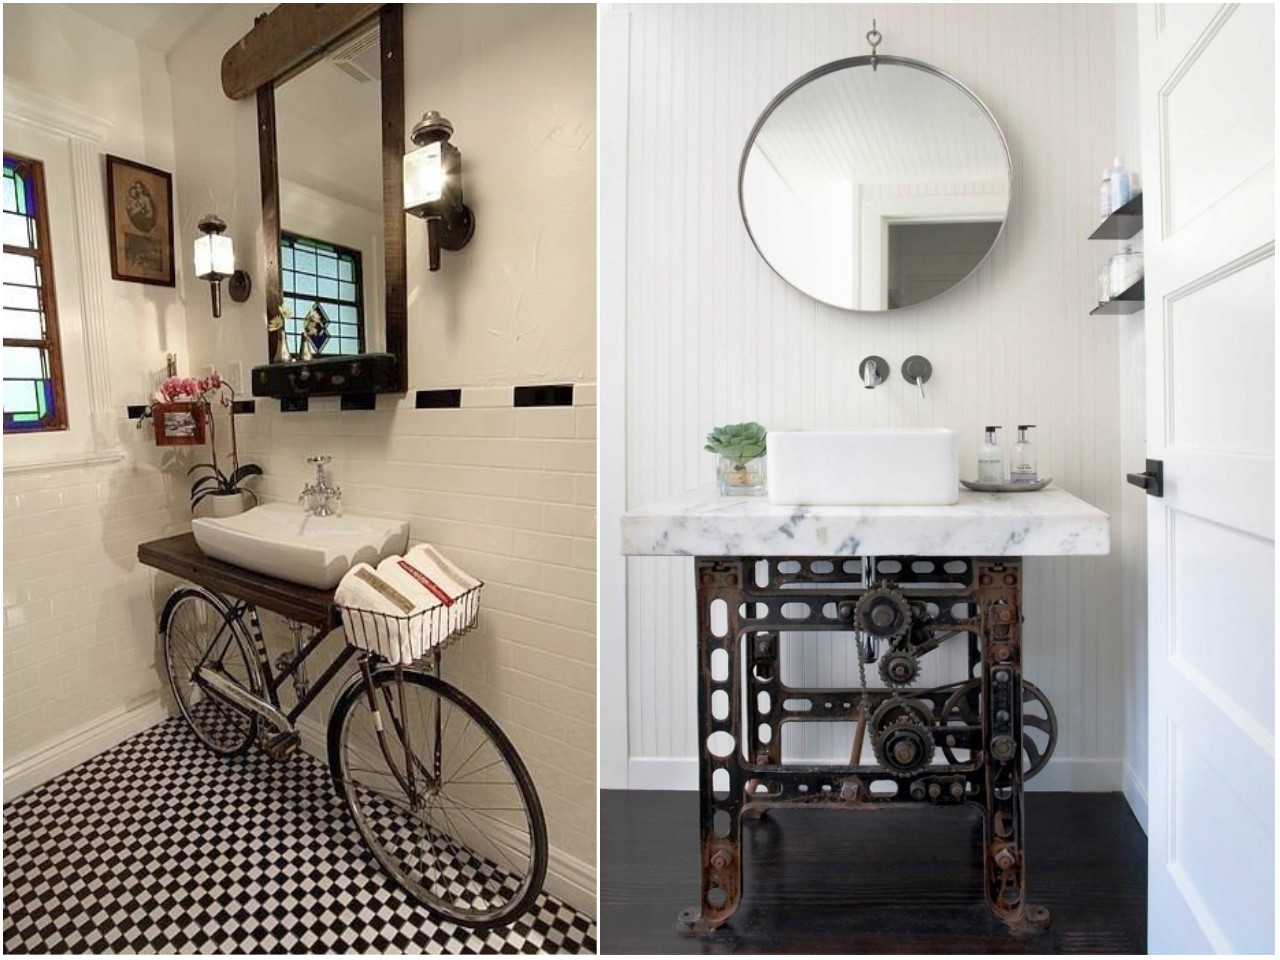 8 ideas trending para decorar ba os con estilo for Puertas para reciclar